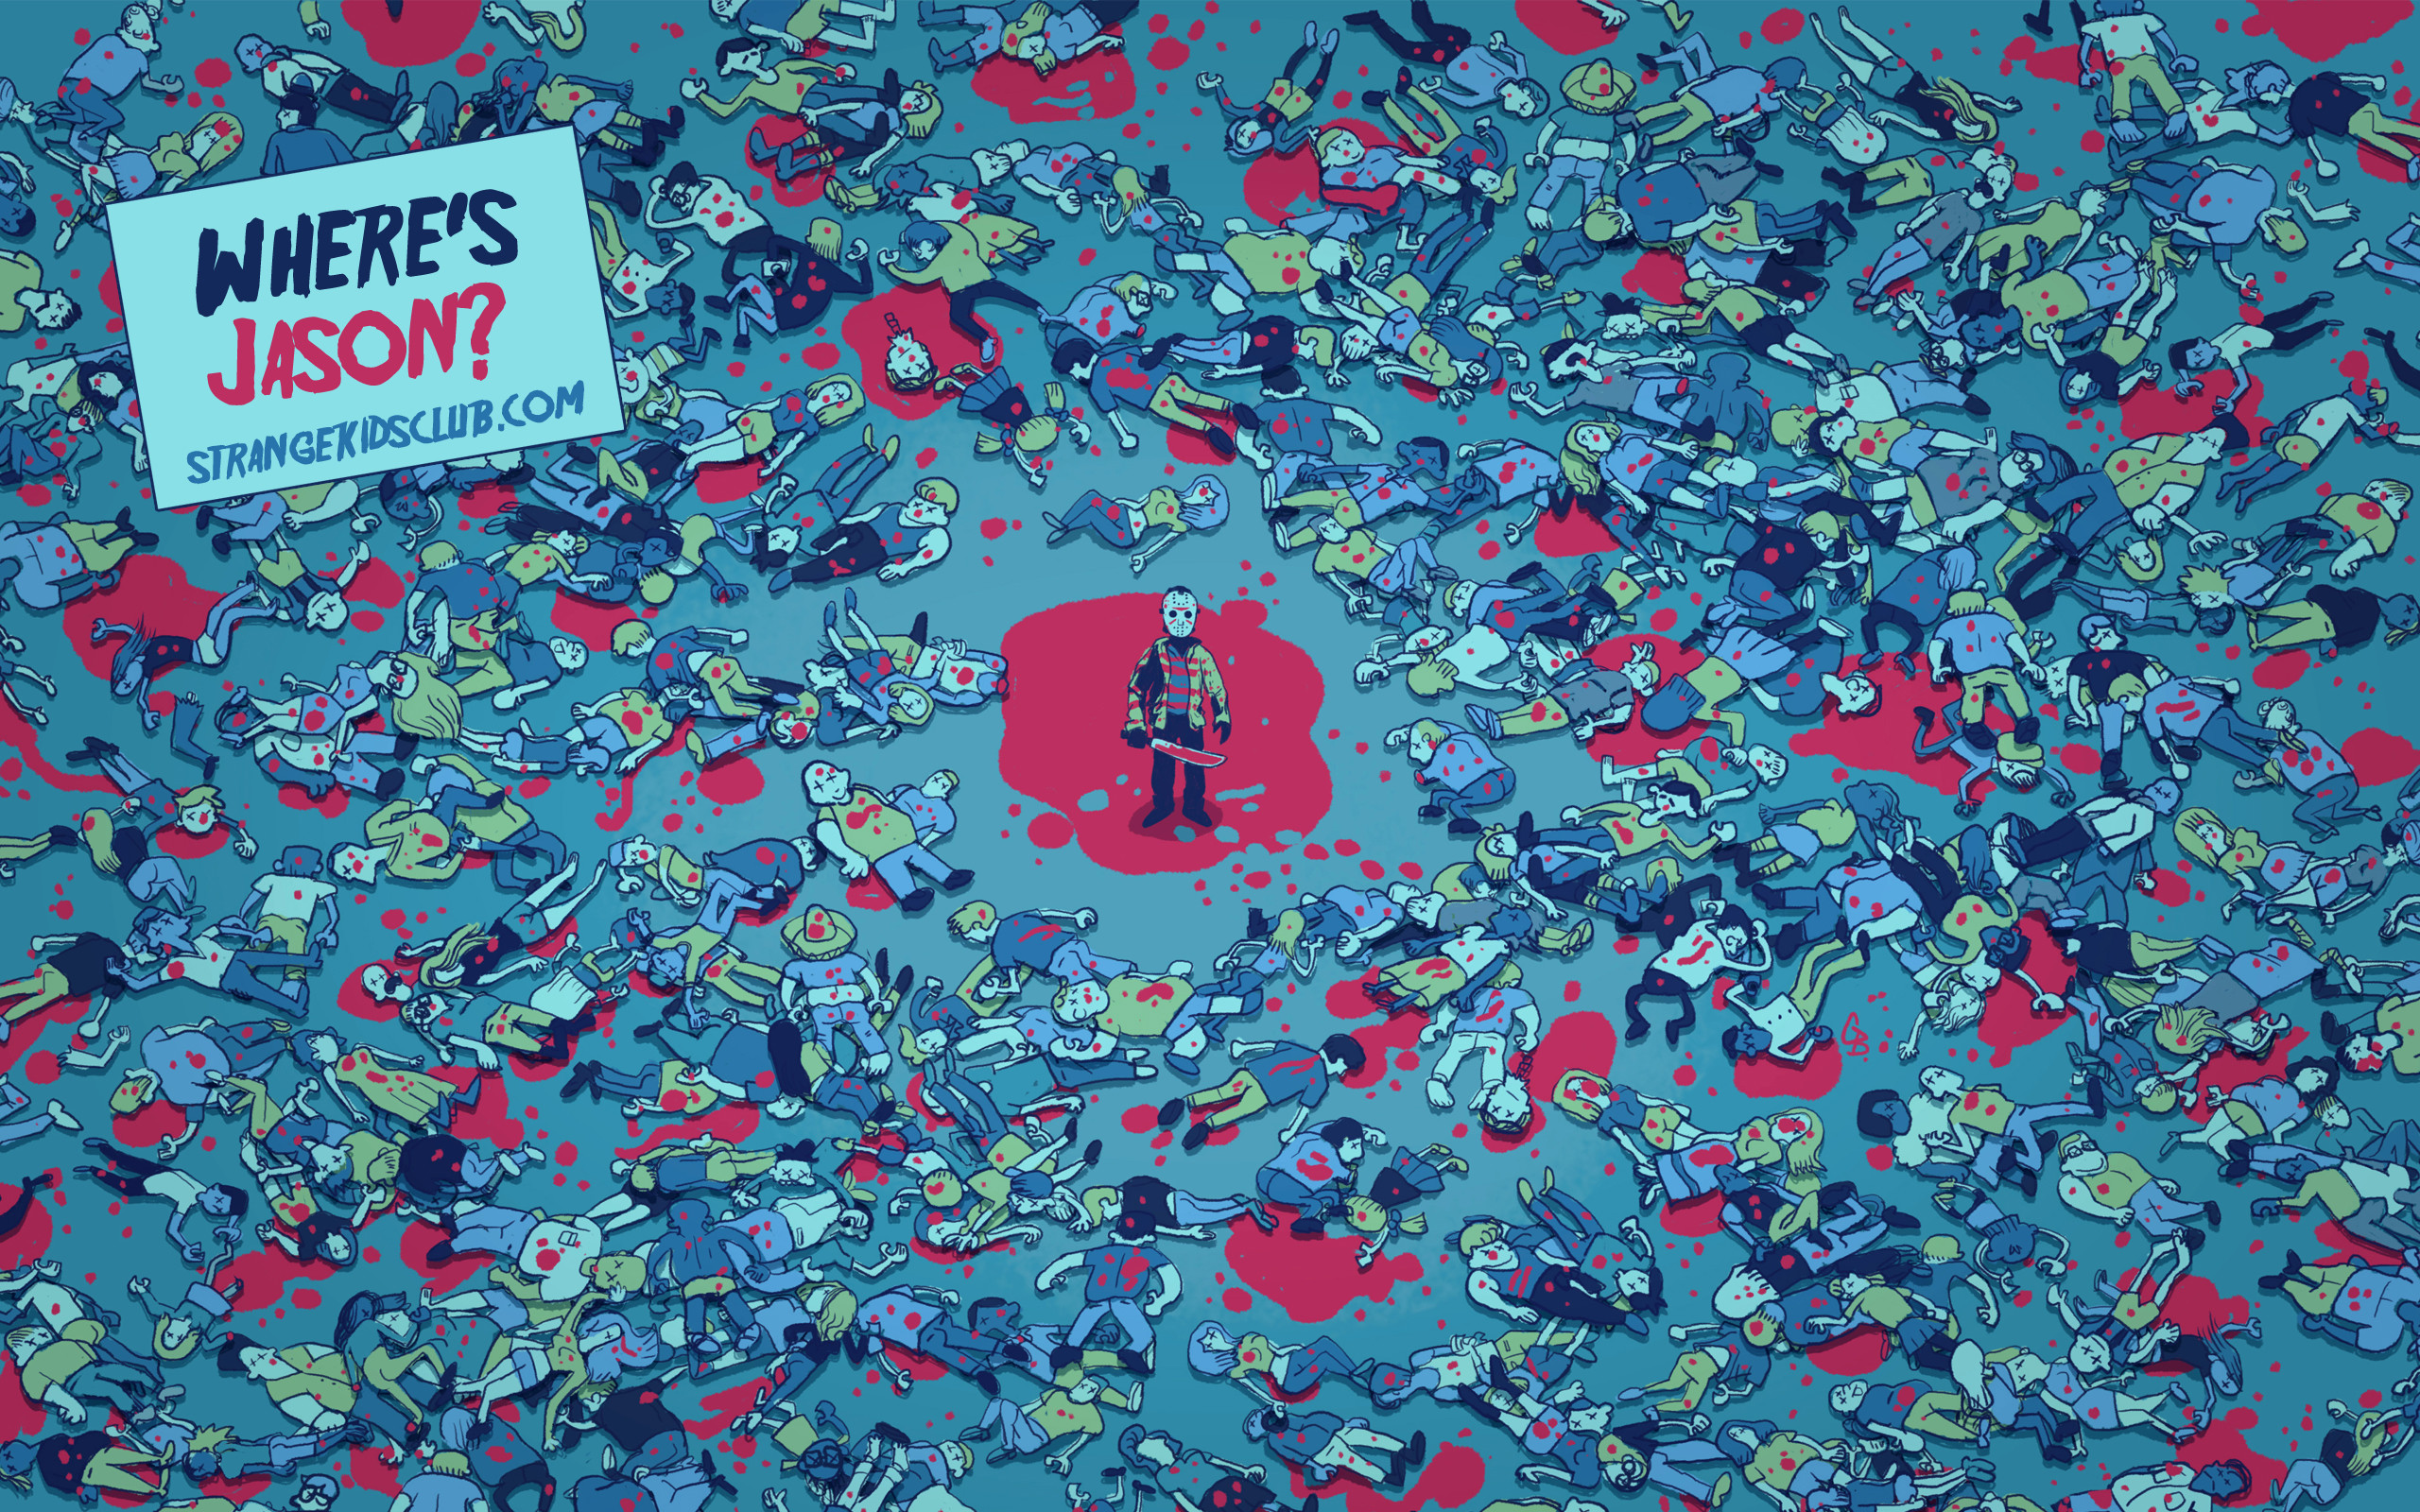 Res: 2560x1600, FREE 'Where's Jason?' Wallpaper by Glen Brogran to Celebrate Friday the 13th